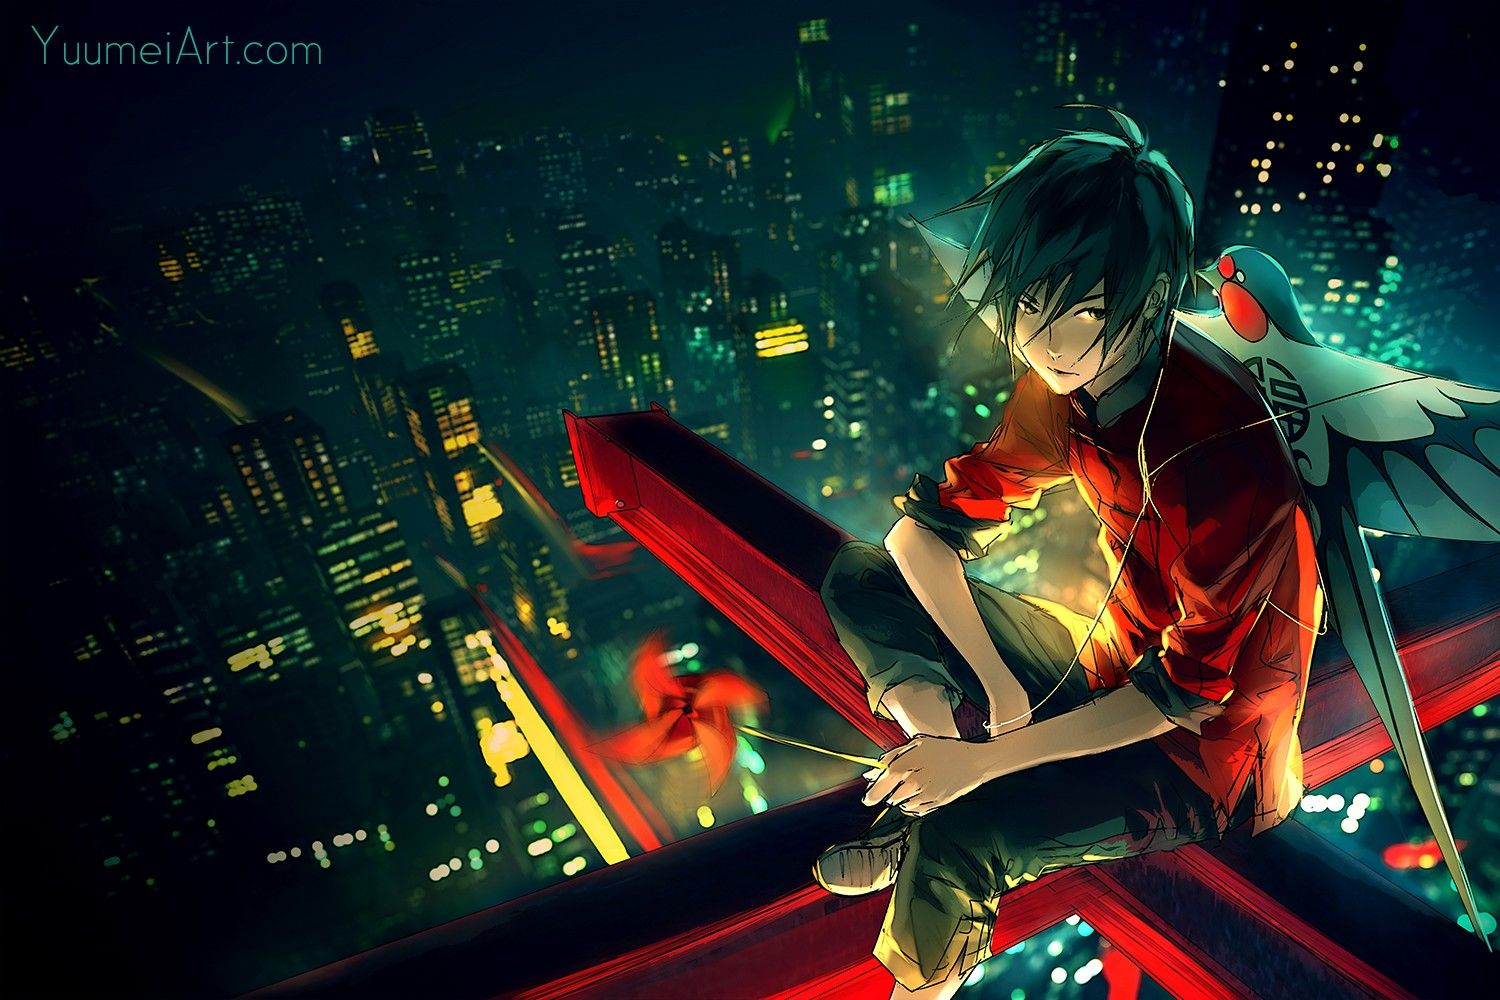 Alone Anime Wallpapers Top Free Alone Anime Backgrounds Wallpaperaccess